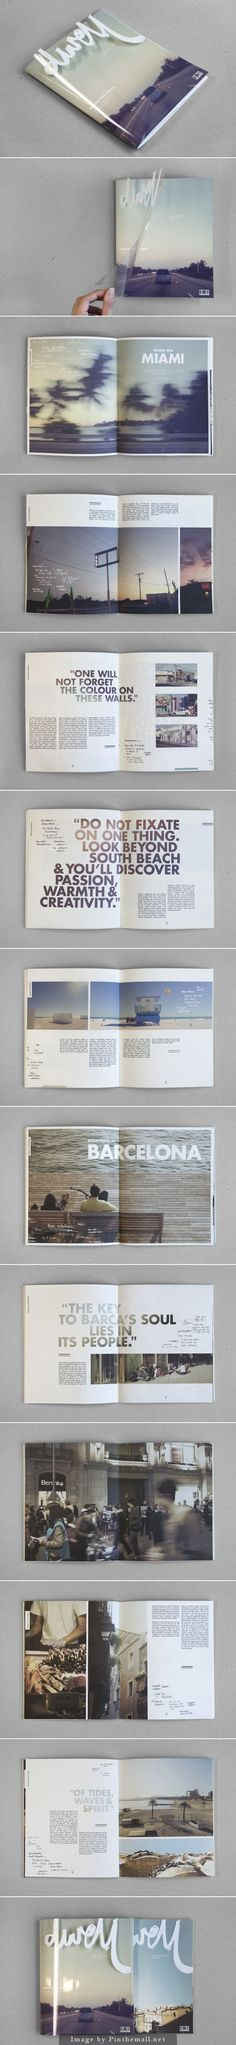 Dwell - Coastal Cities Revisited  #iconika #graphic #design #thinking